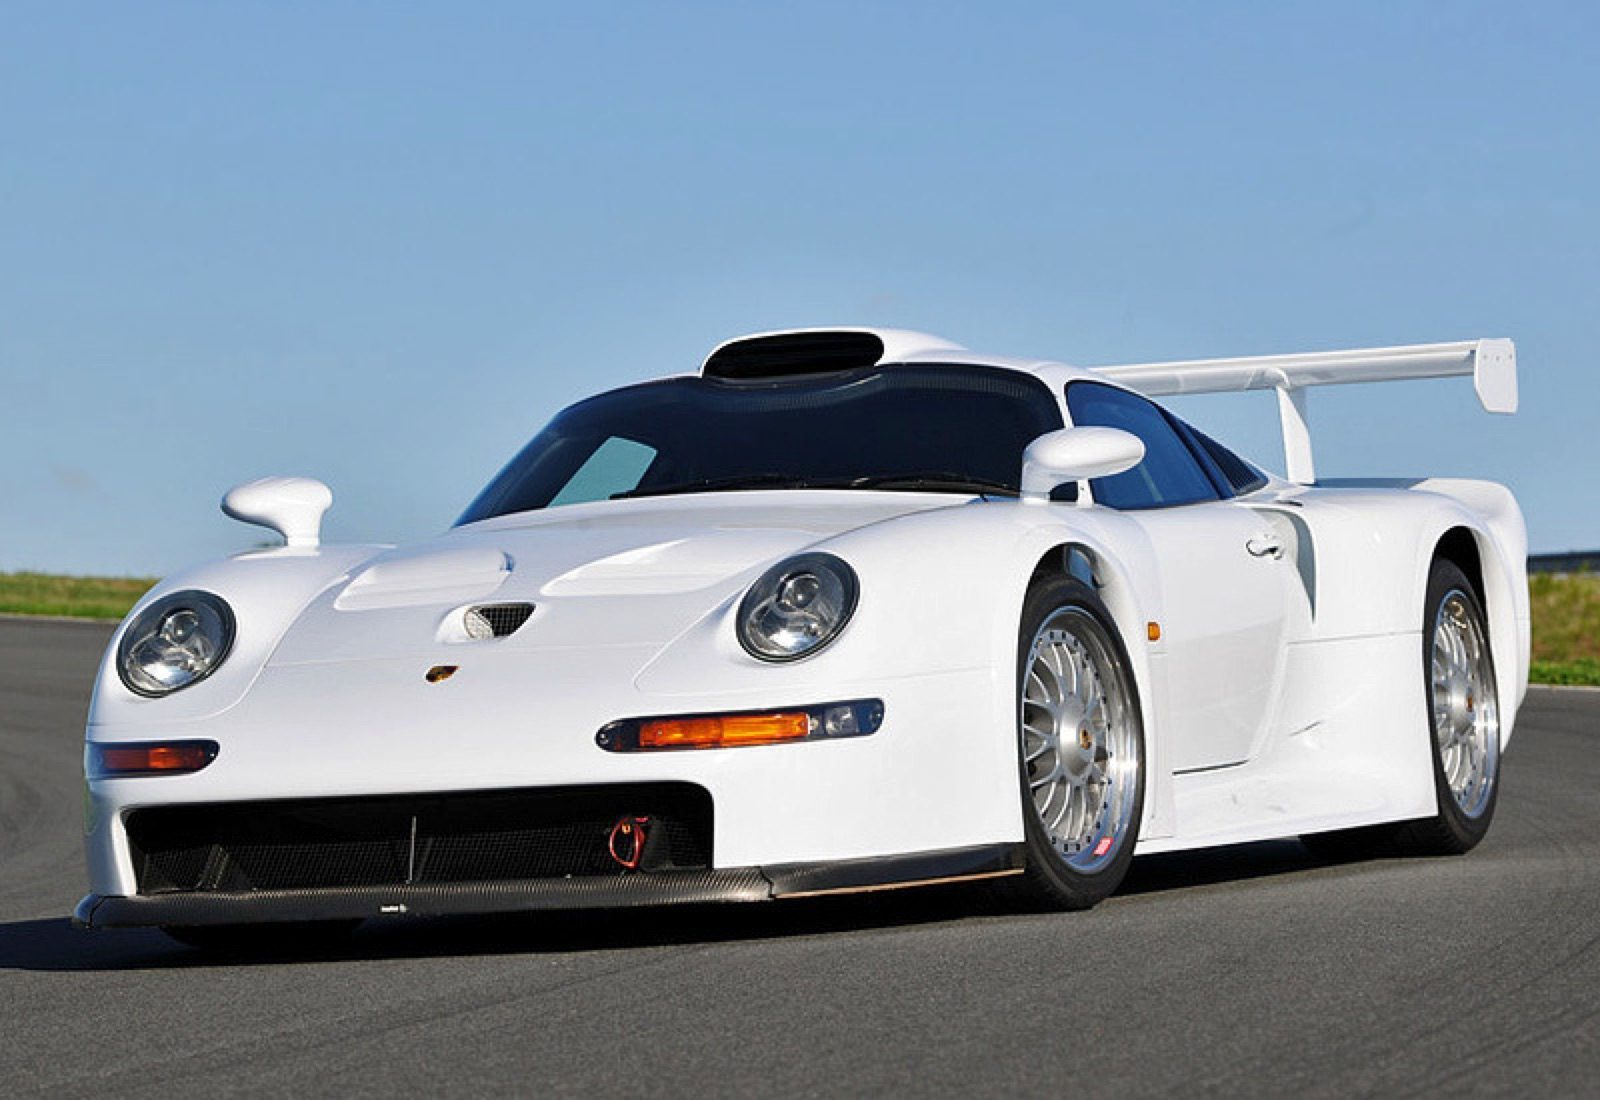 jaren '90 supercars - Porsche 911 GT1 Strassenversion